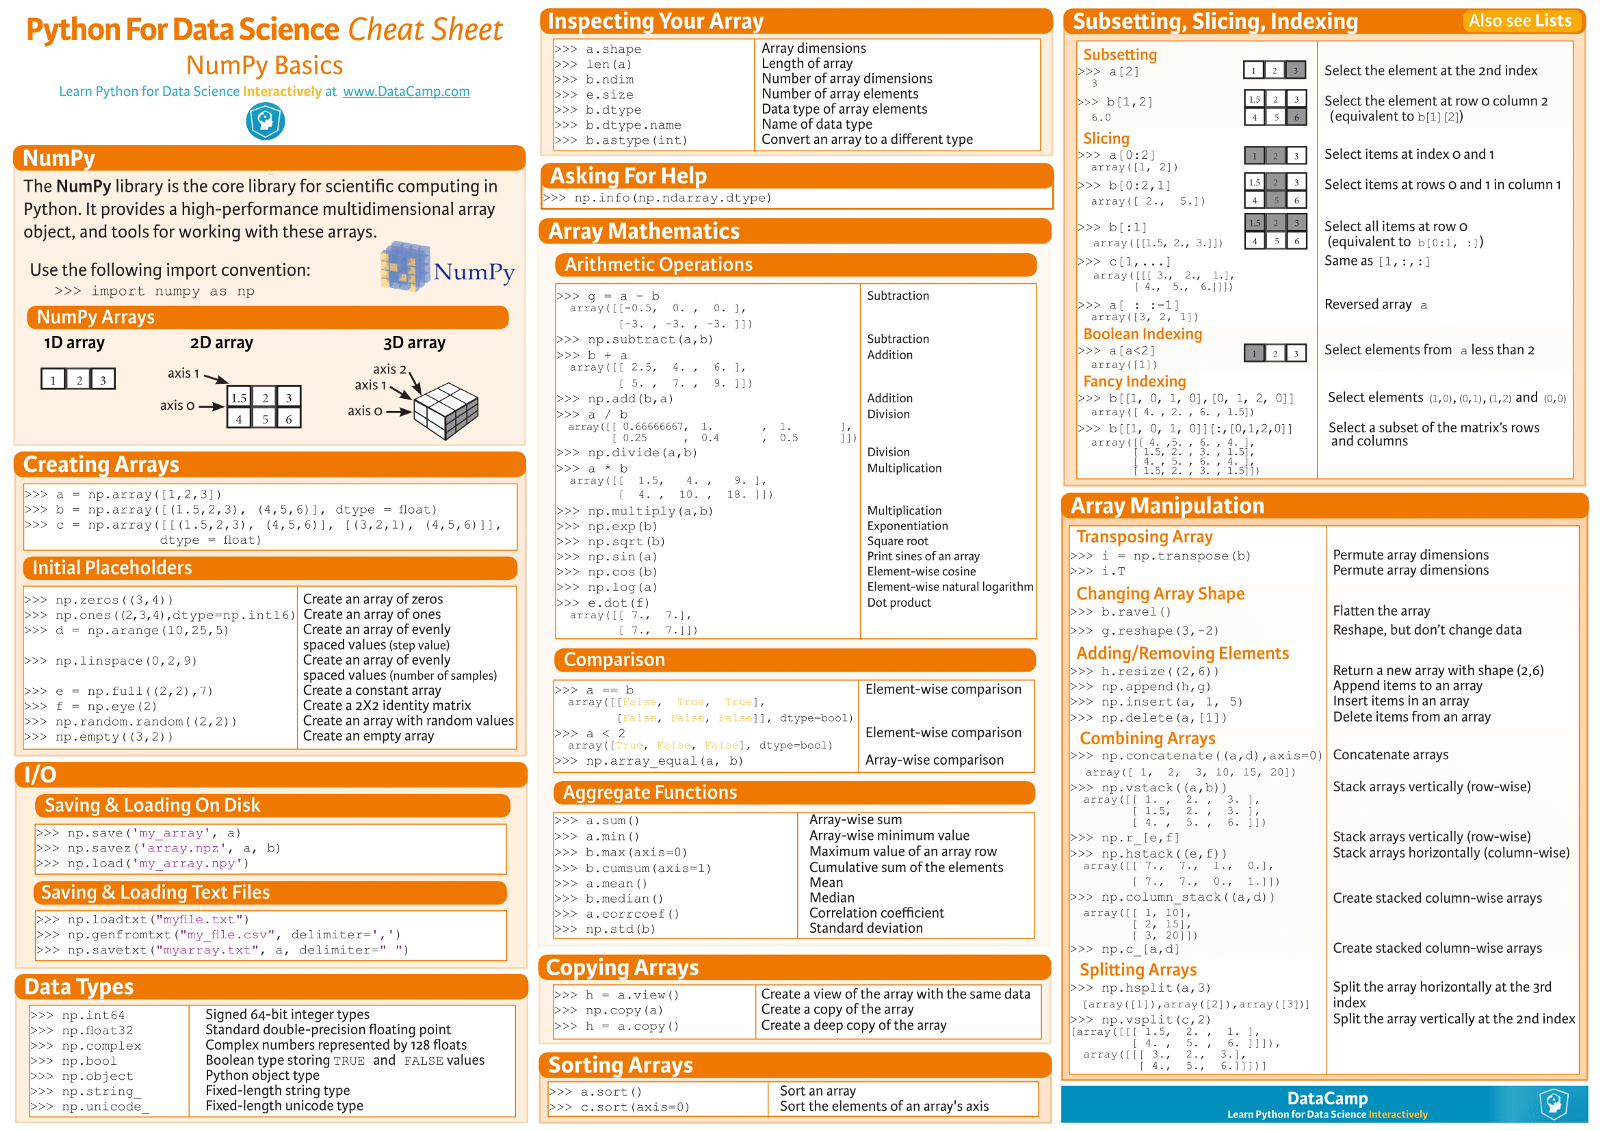 Top 6 Cheat Sheets Novice Machine Learning Engineers Need